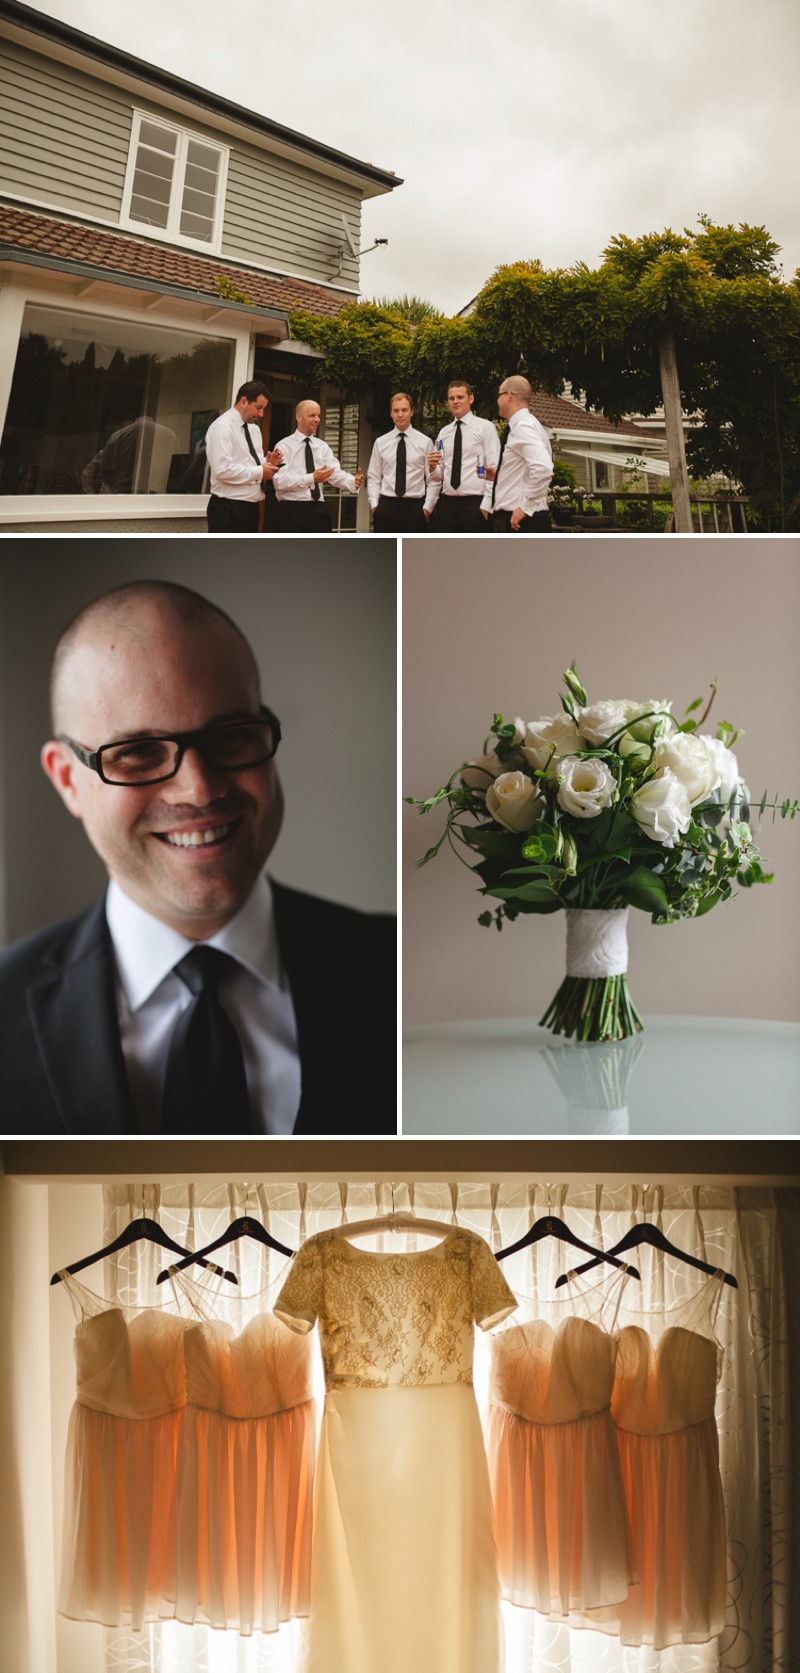 A Destination Black Tie Wedding At Gear Homestead In New Zealand With A Neutral Colour Scheme and A White Rose Bouquet By Tim Williams Photography._0003